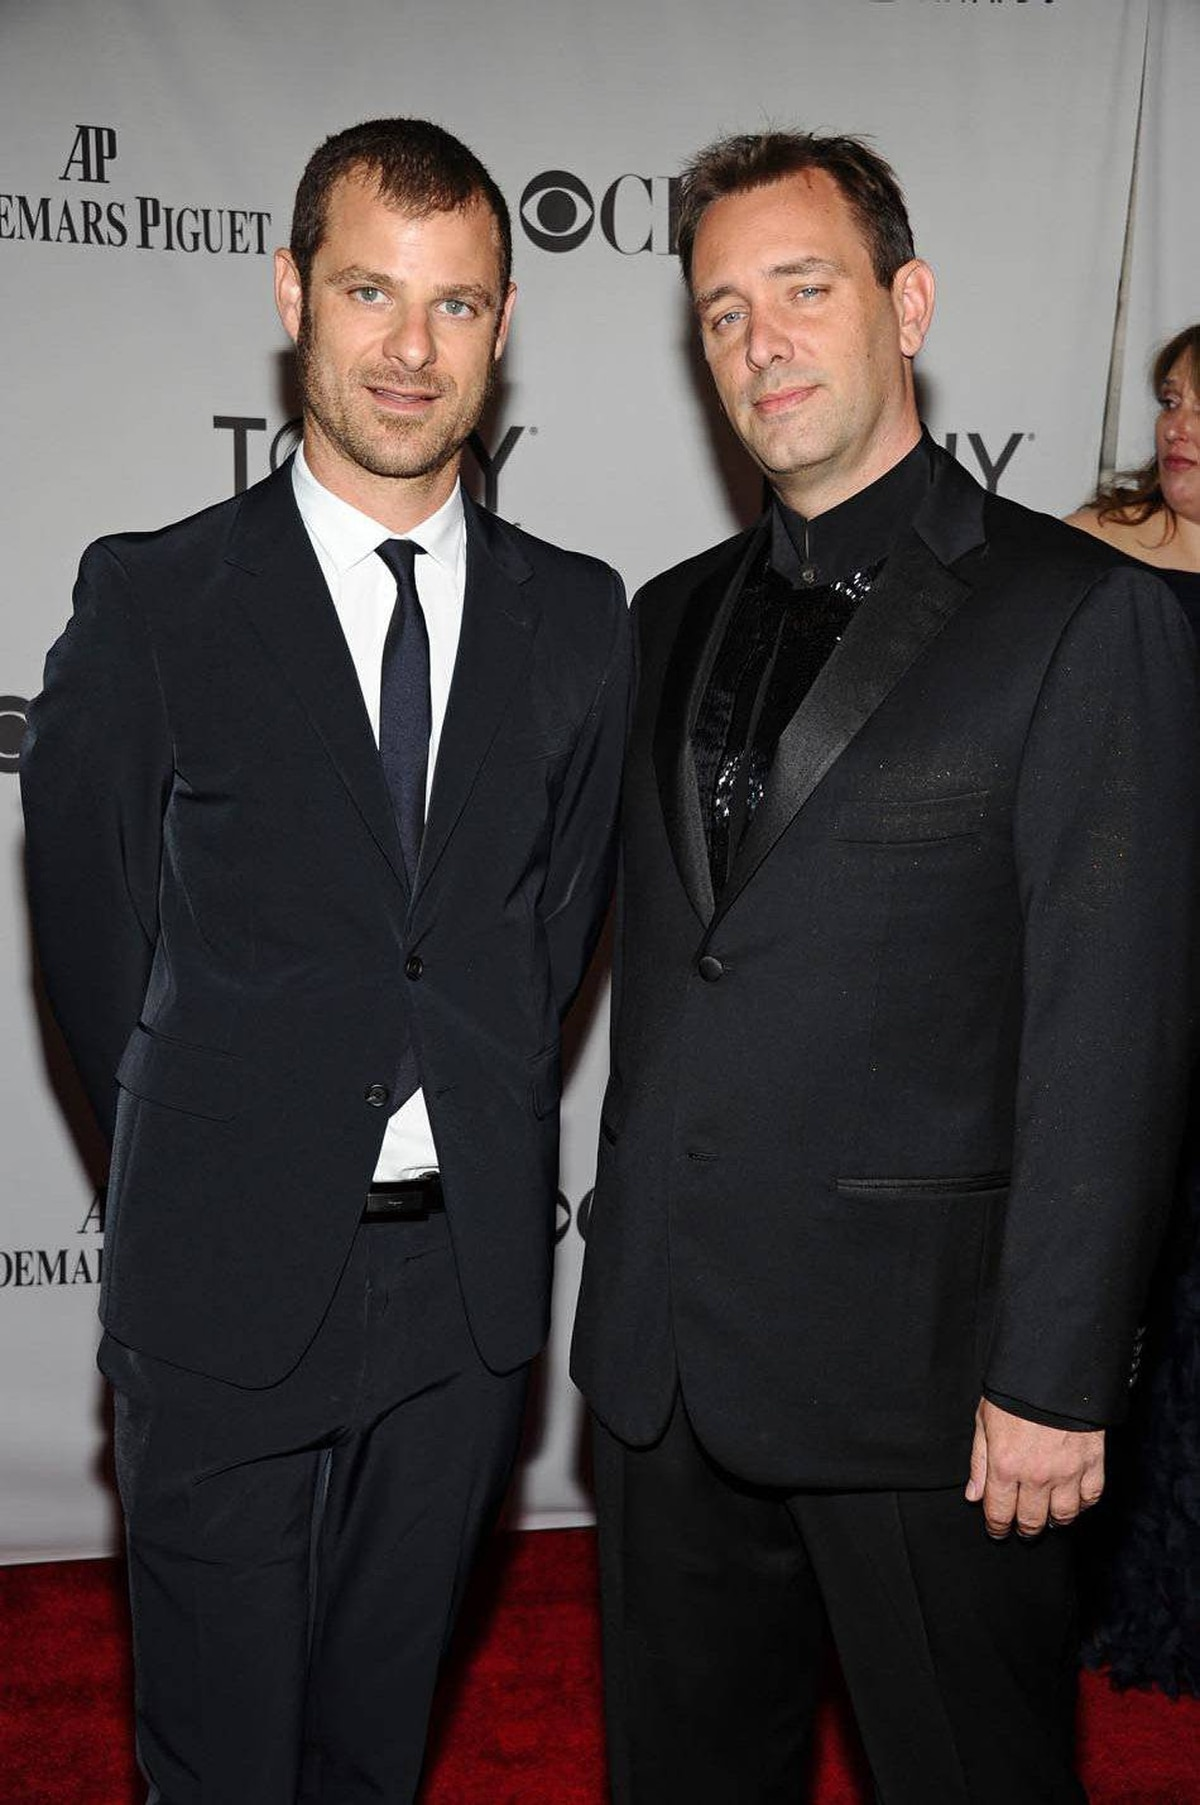 Matt Stone, left, and Trey Parker arrive at the 65th annual Tony Awards, Sunday, June 12, 2011 in New York.